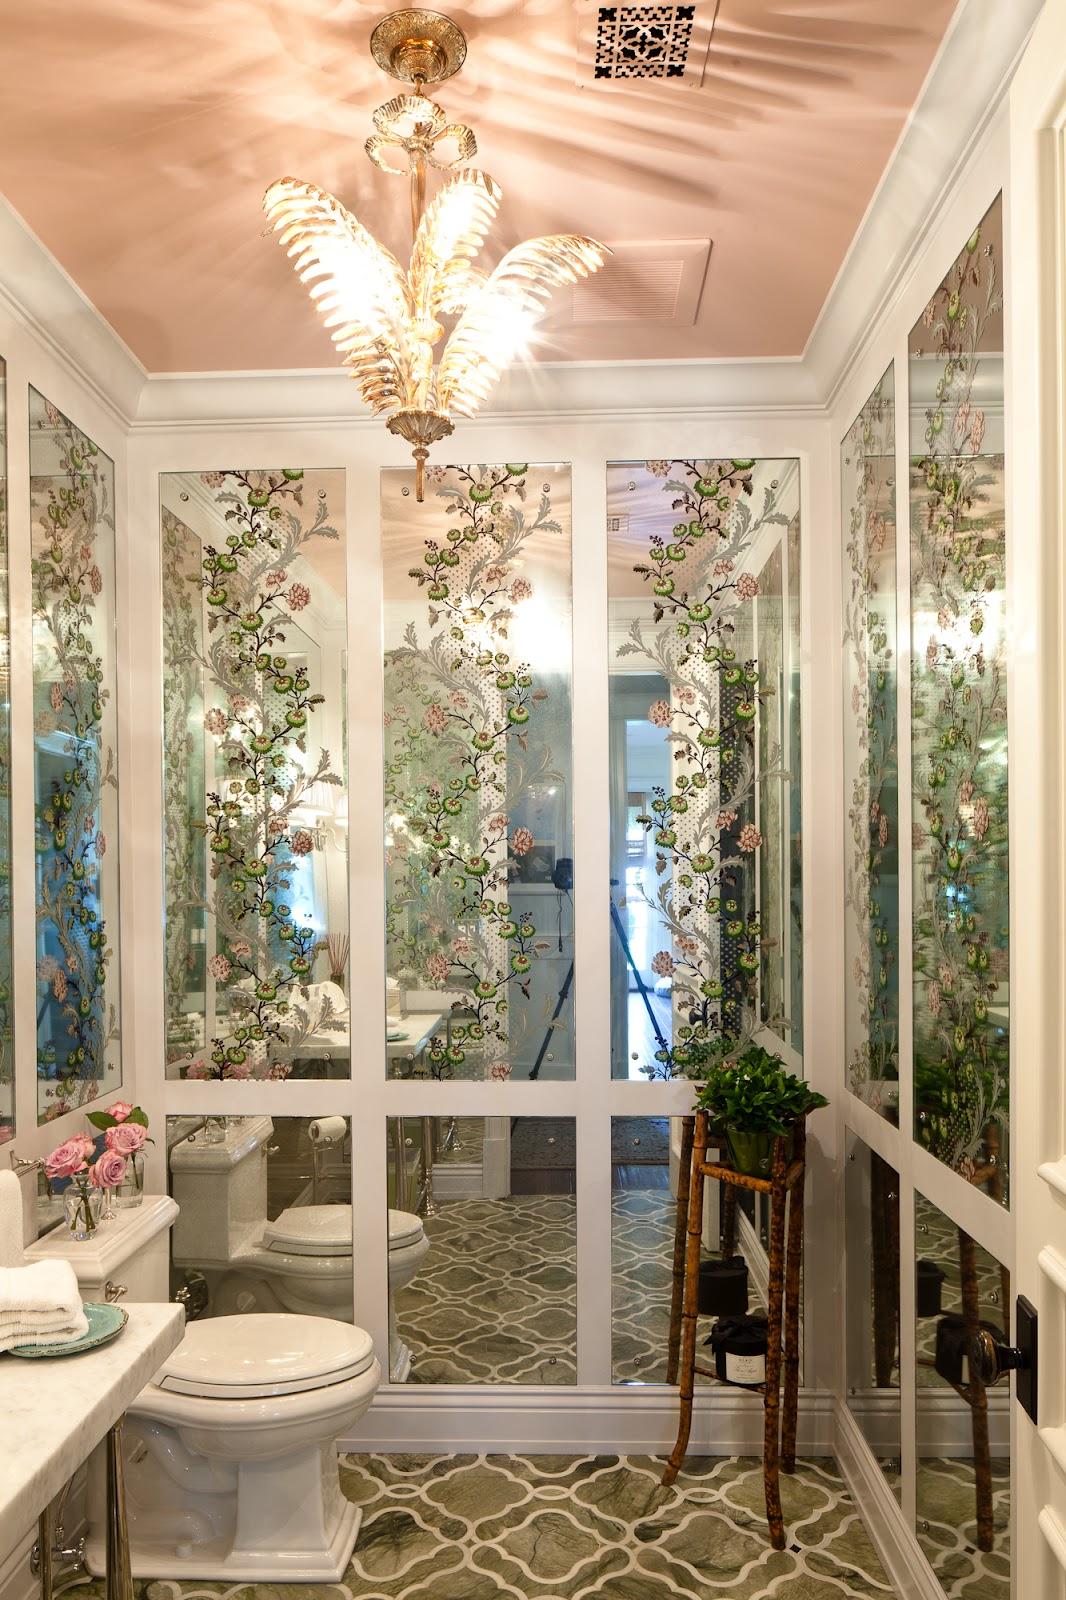 enchanting pink ceiling bathrooms | Chinoiserie Chic: June 2012